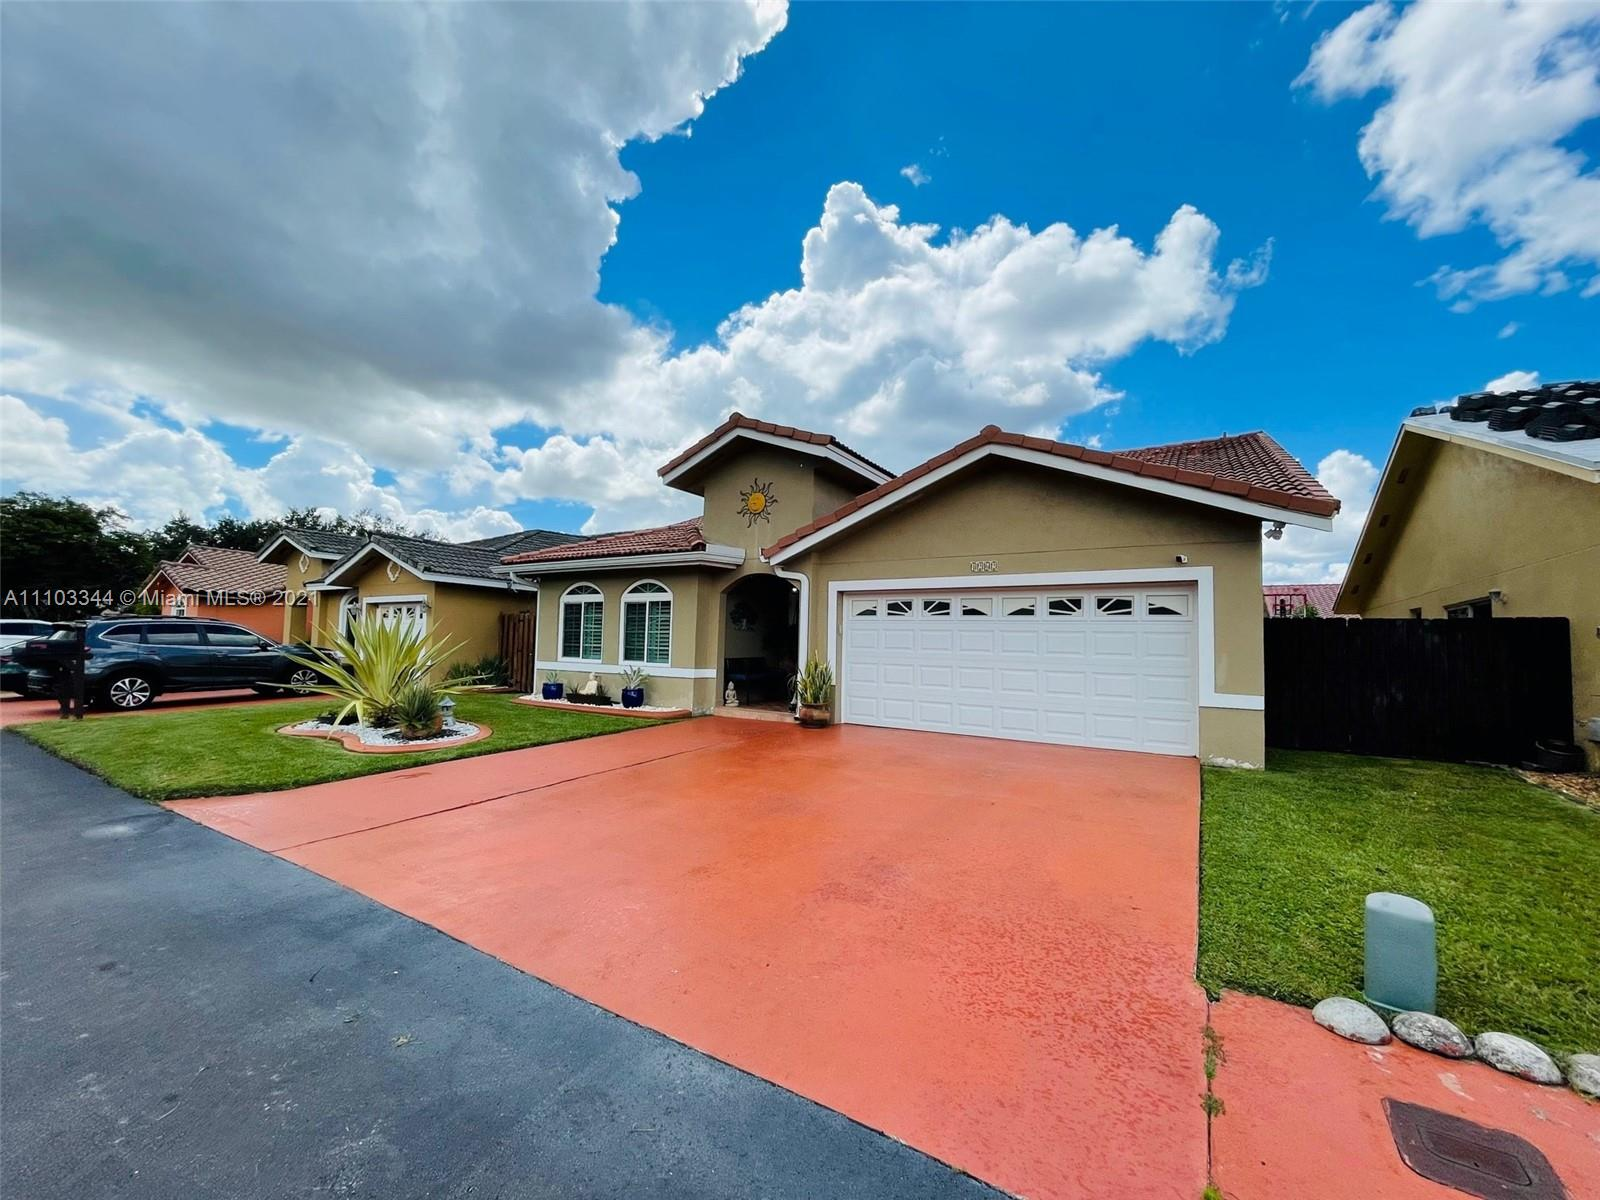 Lakes Of The Meadow - 4262 SW 153rd Ct, Miami, FL 33185